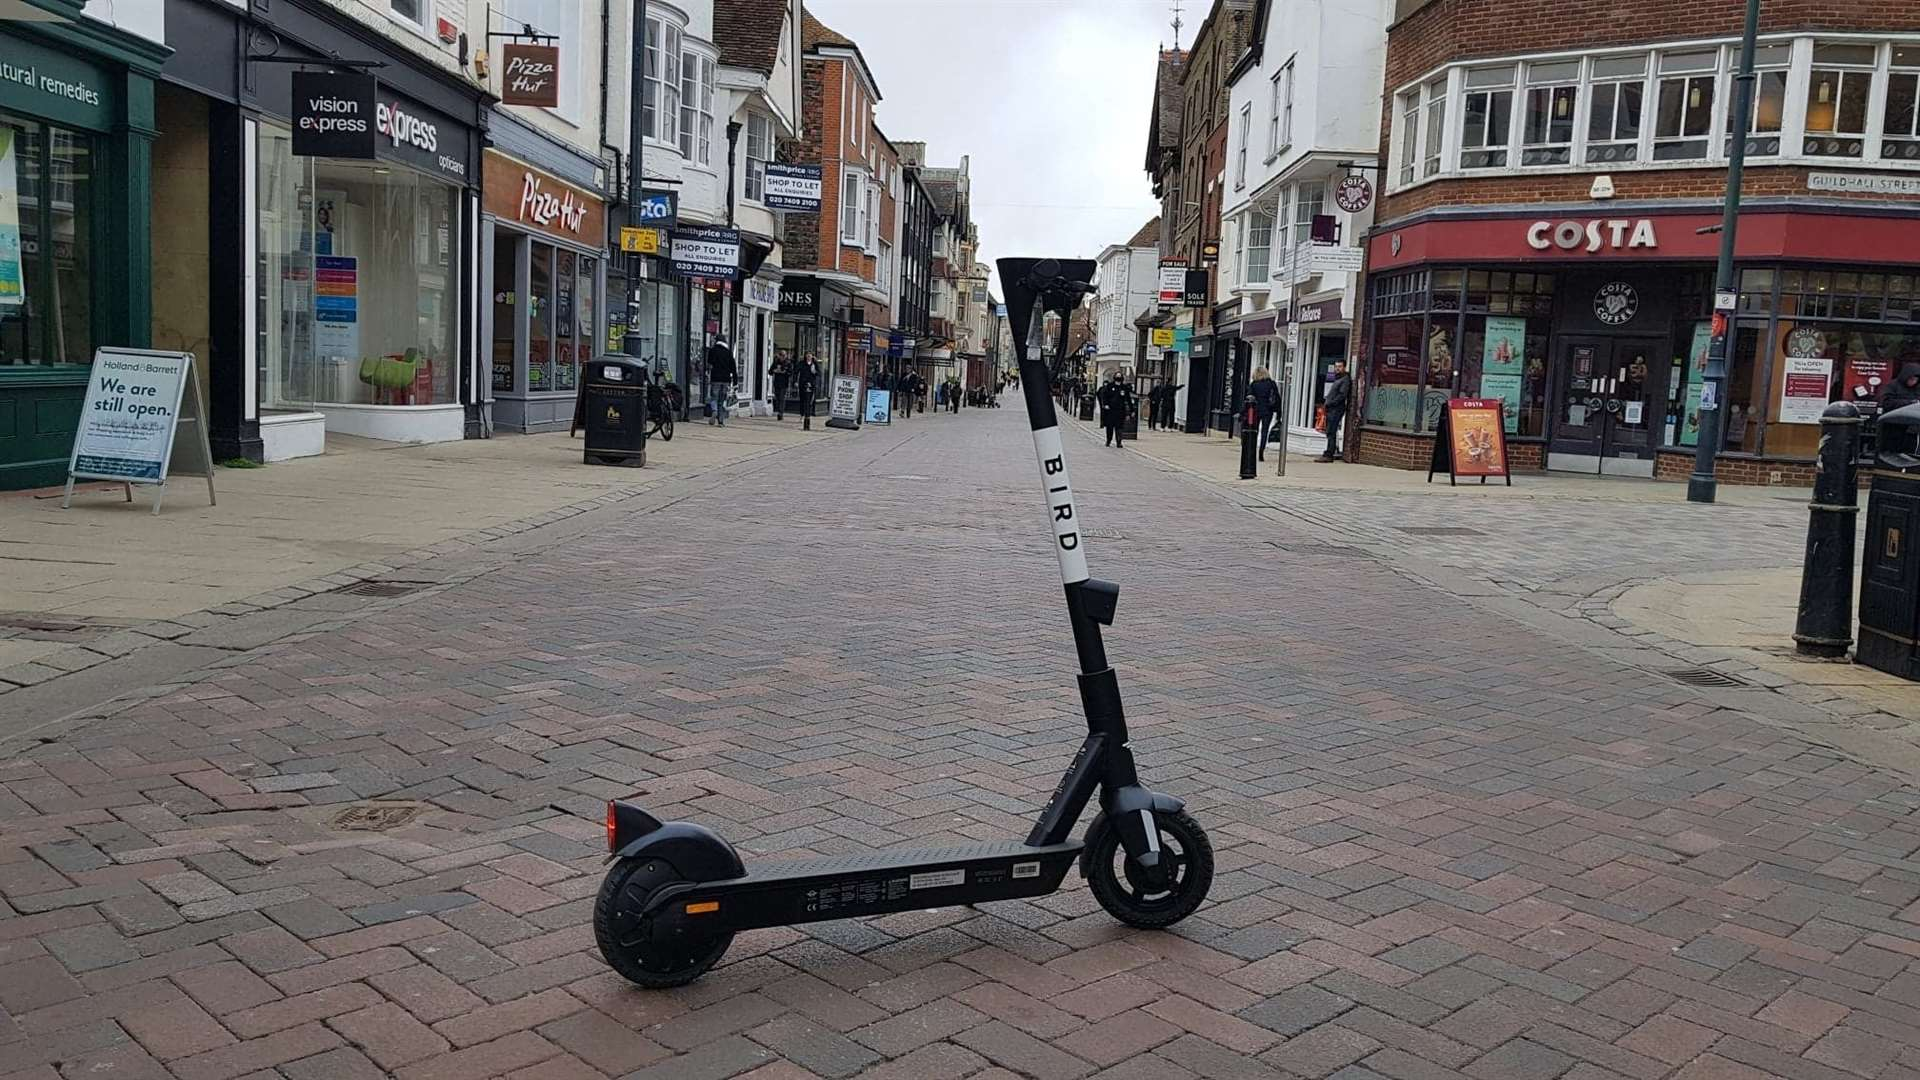 Bird e scooters are available to hire in Canterbury